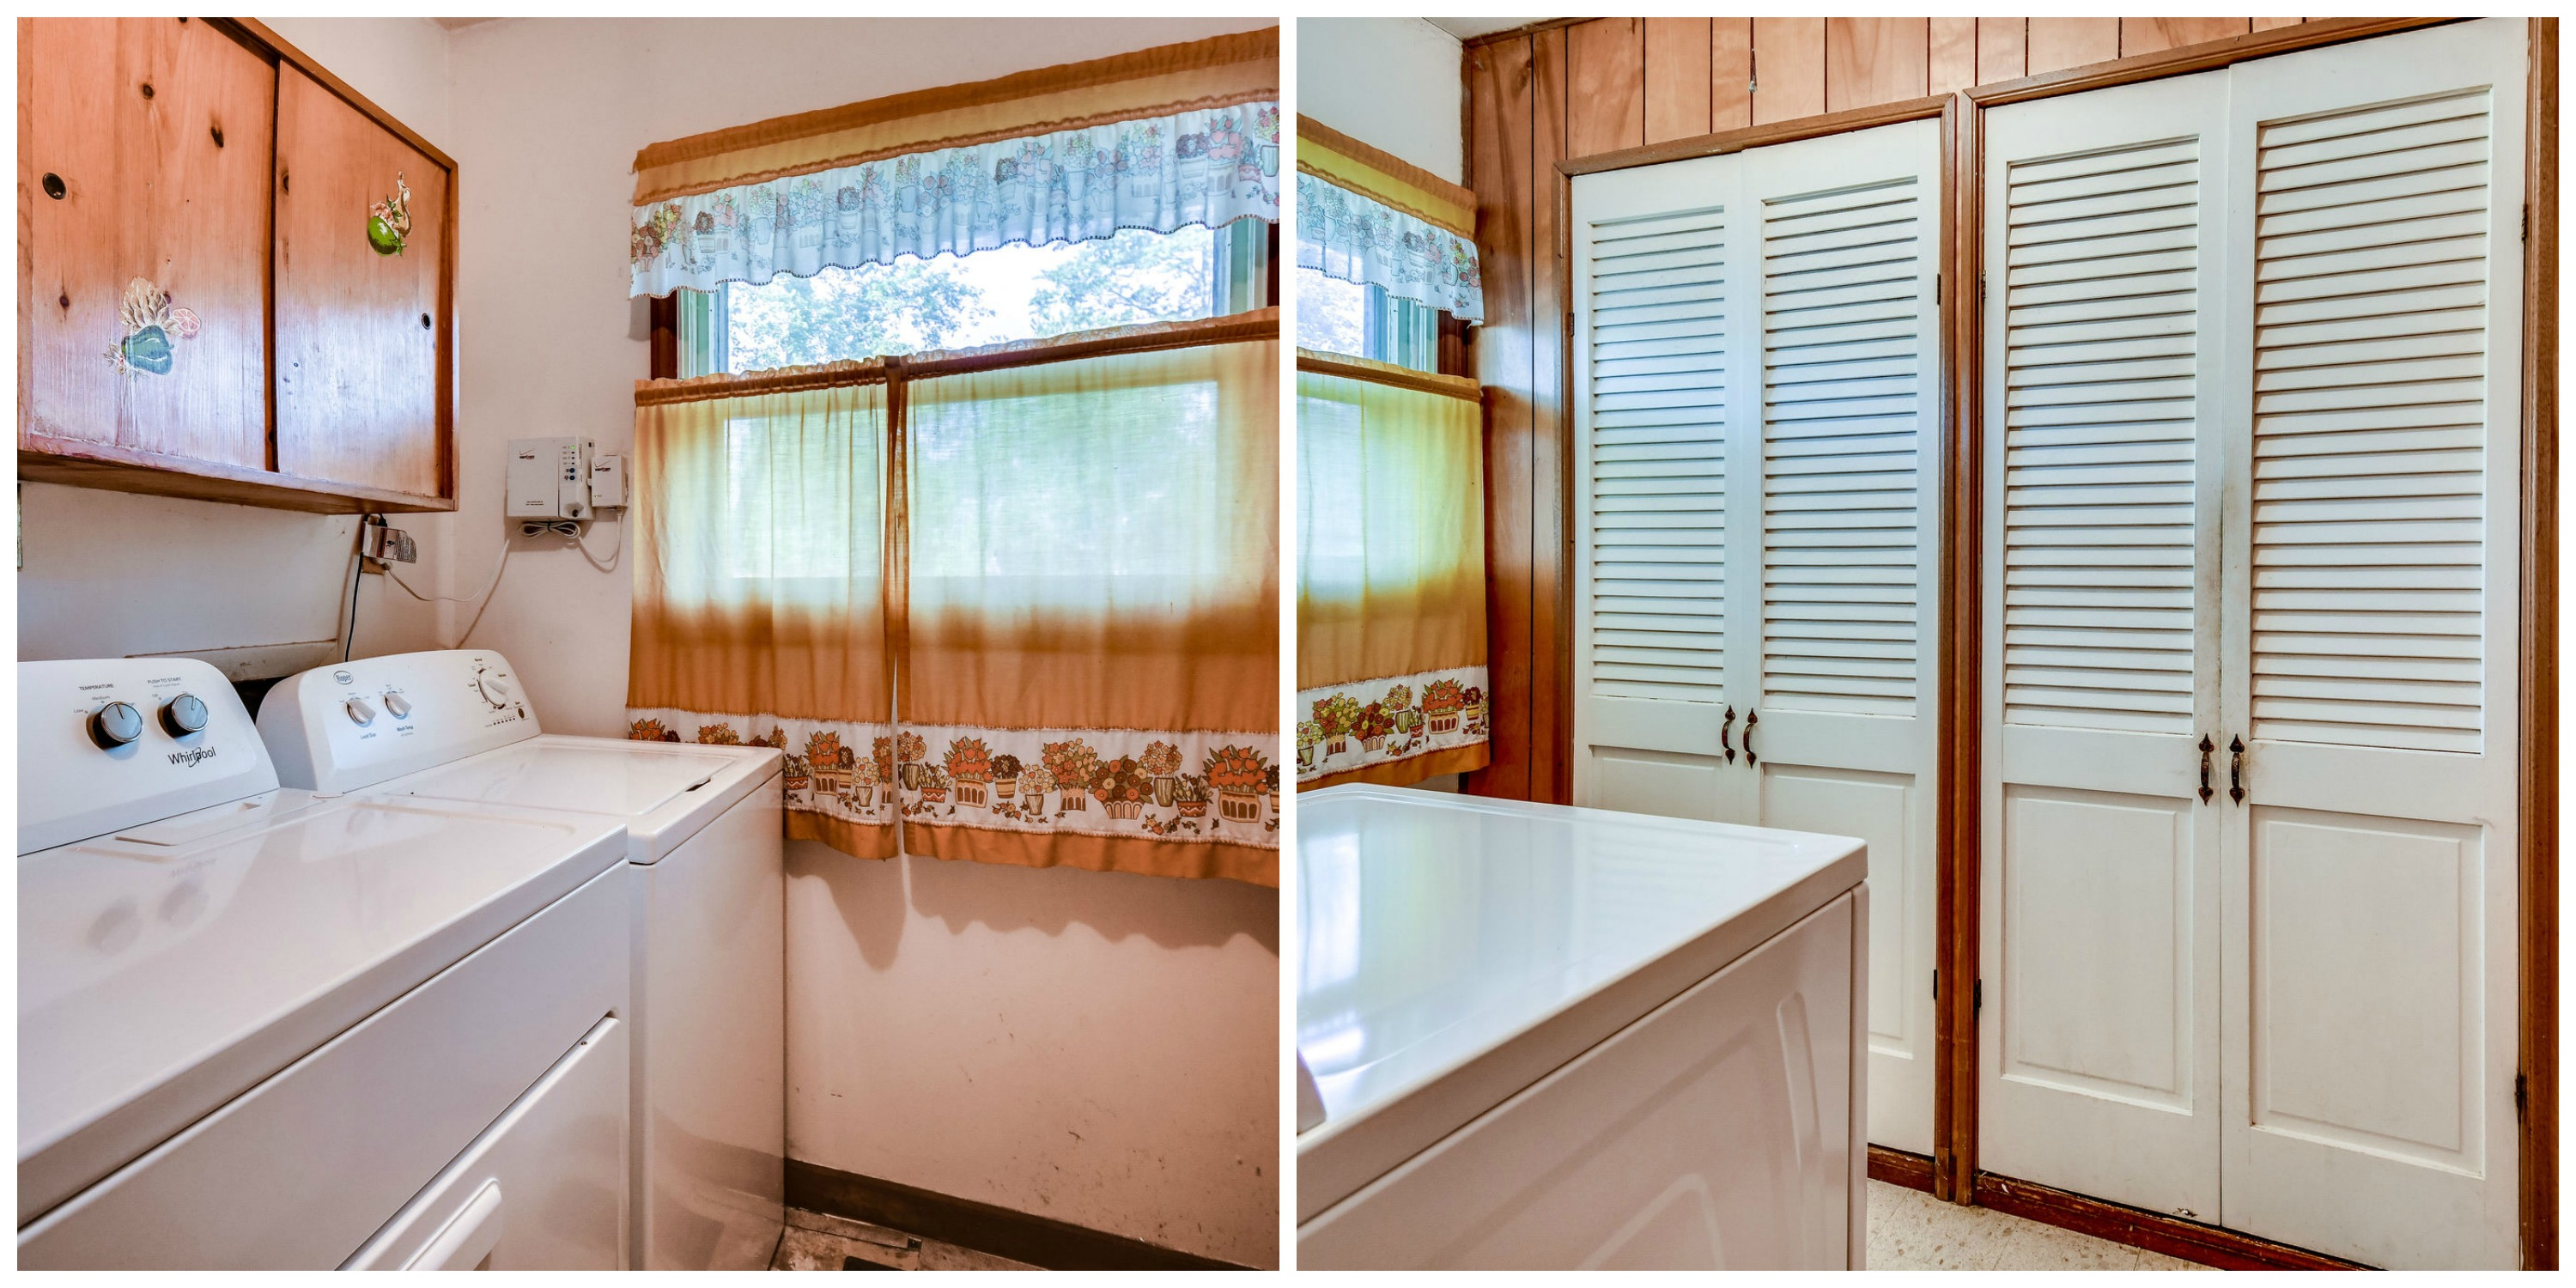 701 W Nettle Tree Rd, Sterling- Laundry Area